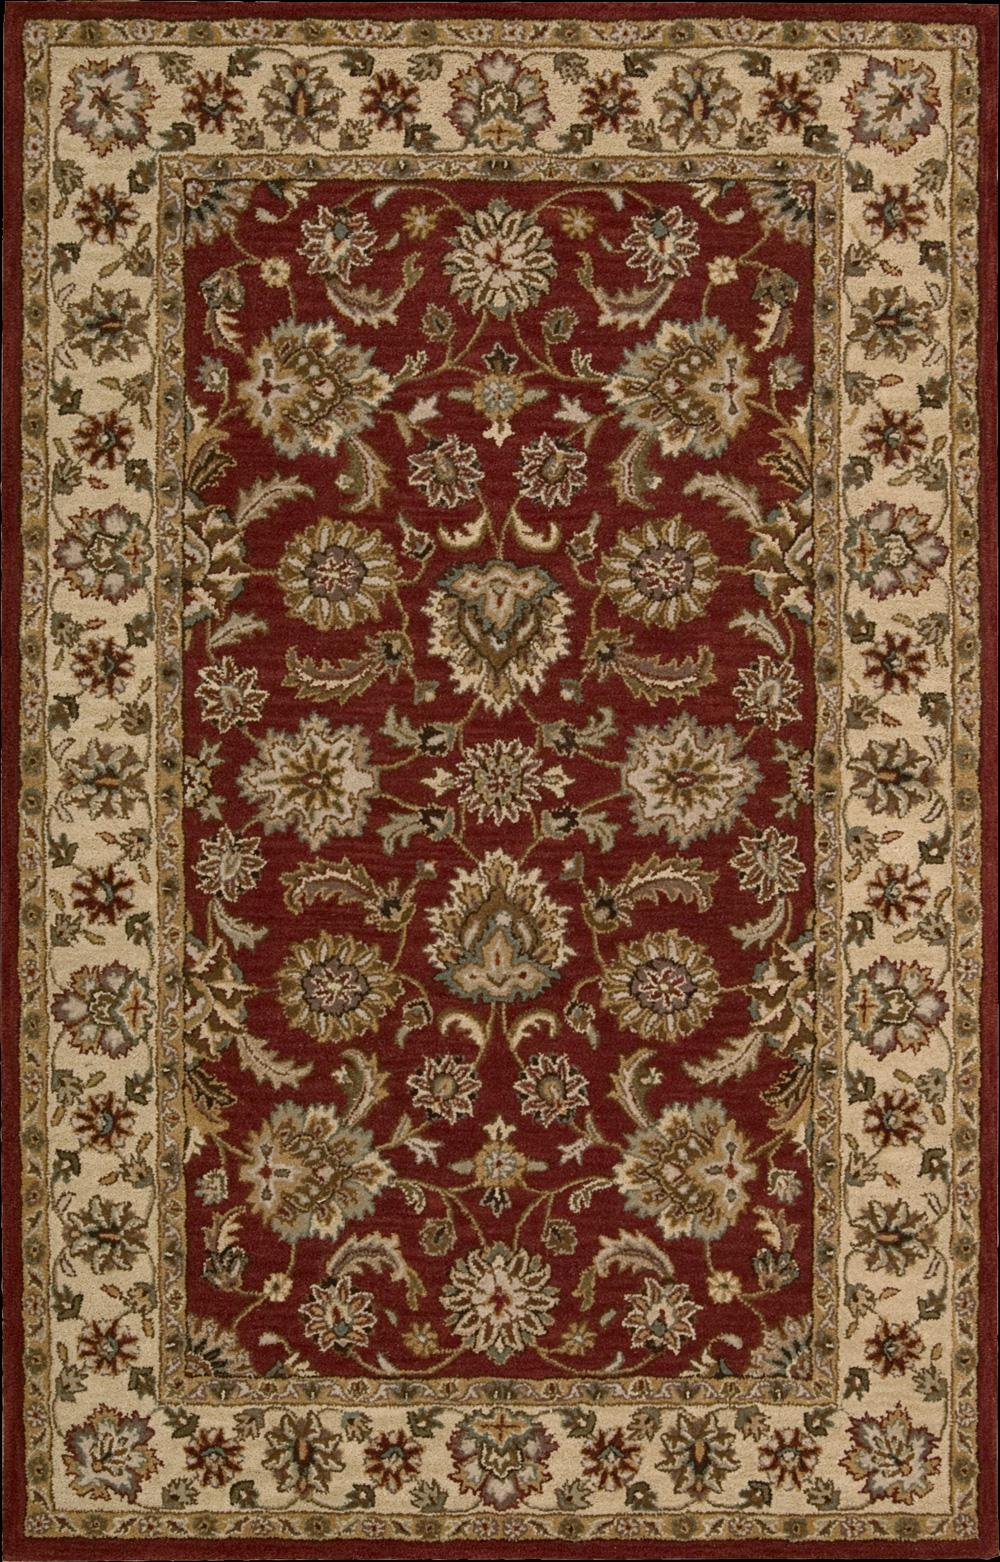 "Nourison India House Area Rug 8' x 10'6"" - Item Number: 41682"